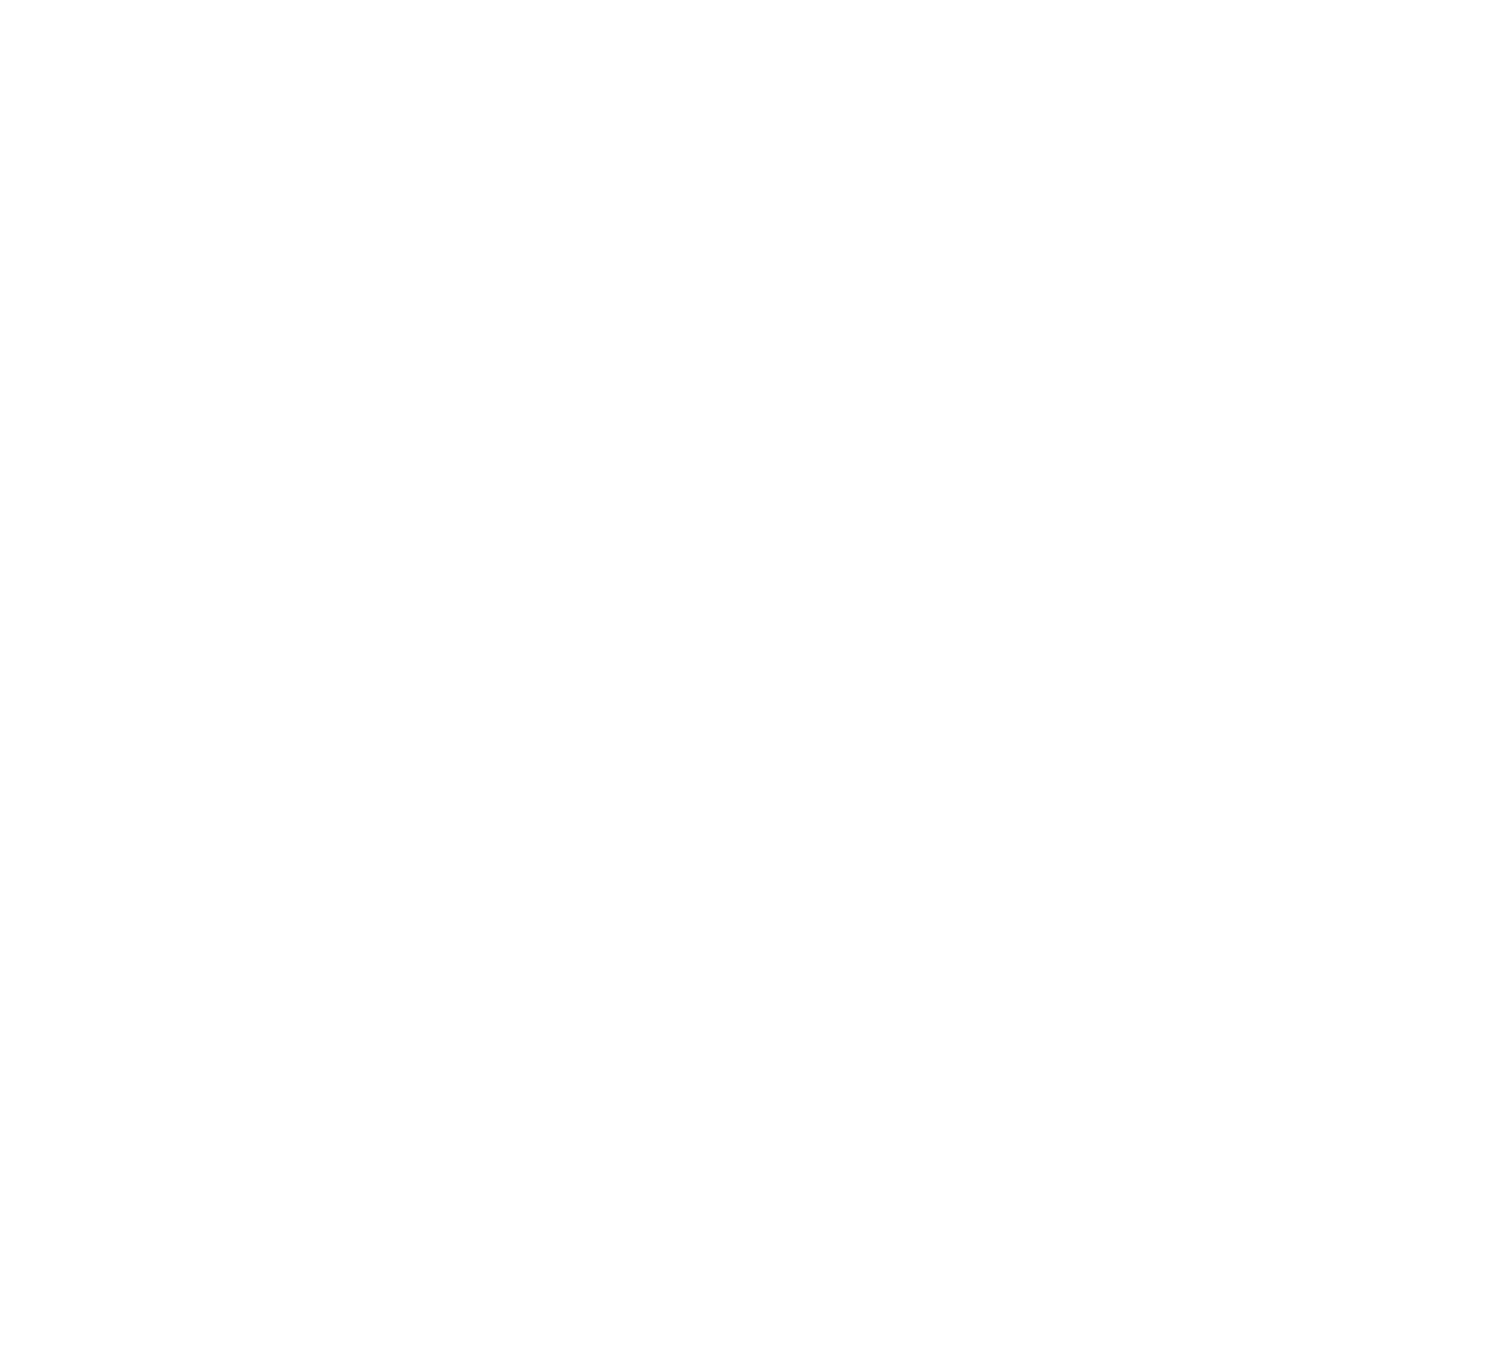 CRY WOLF FILMS